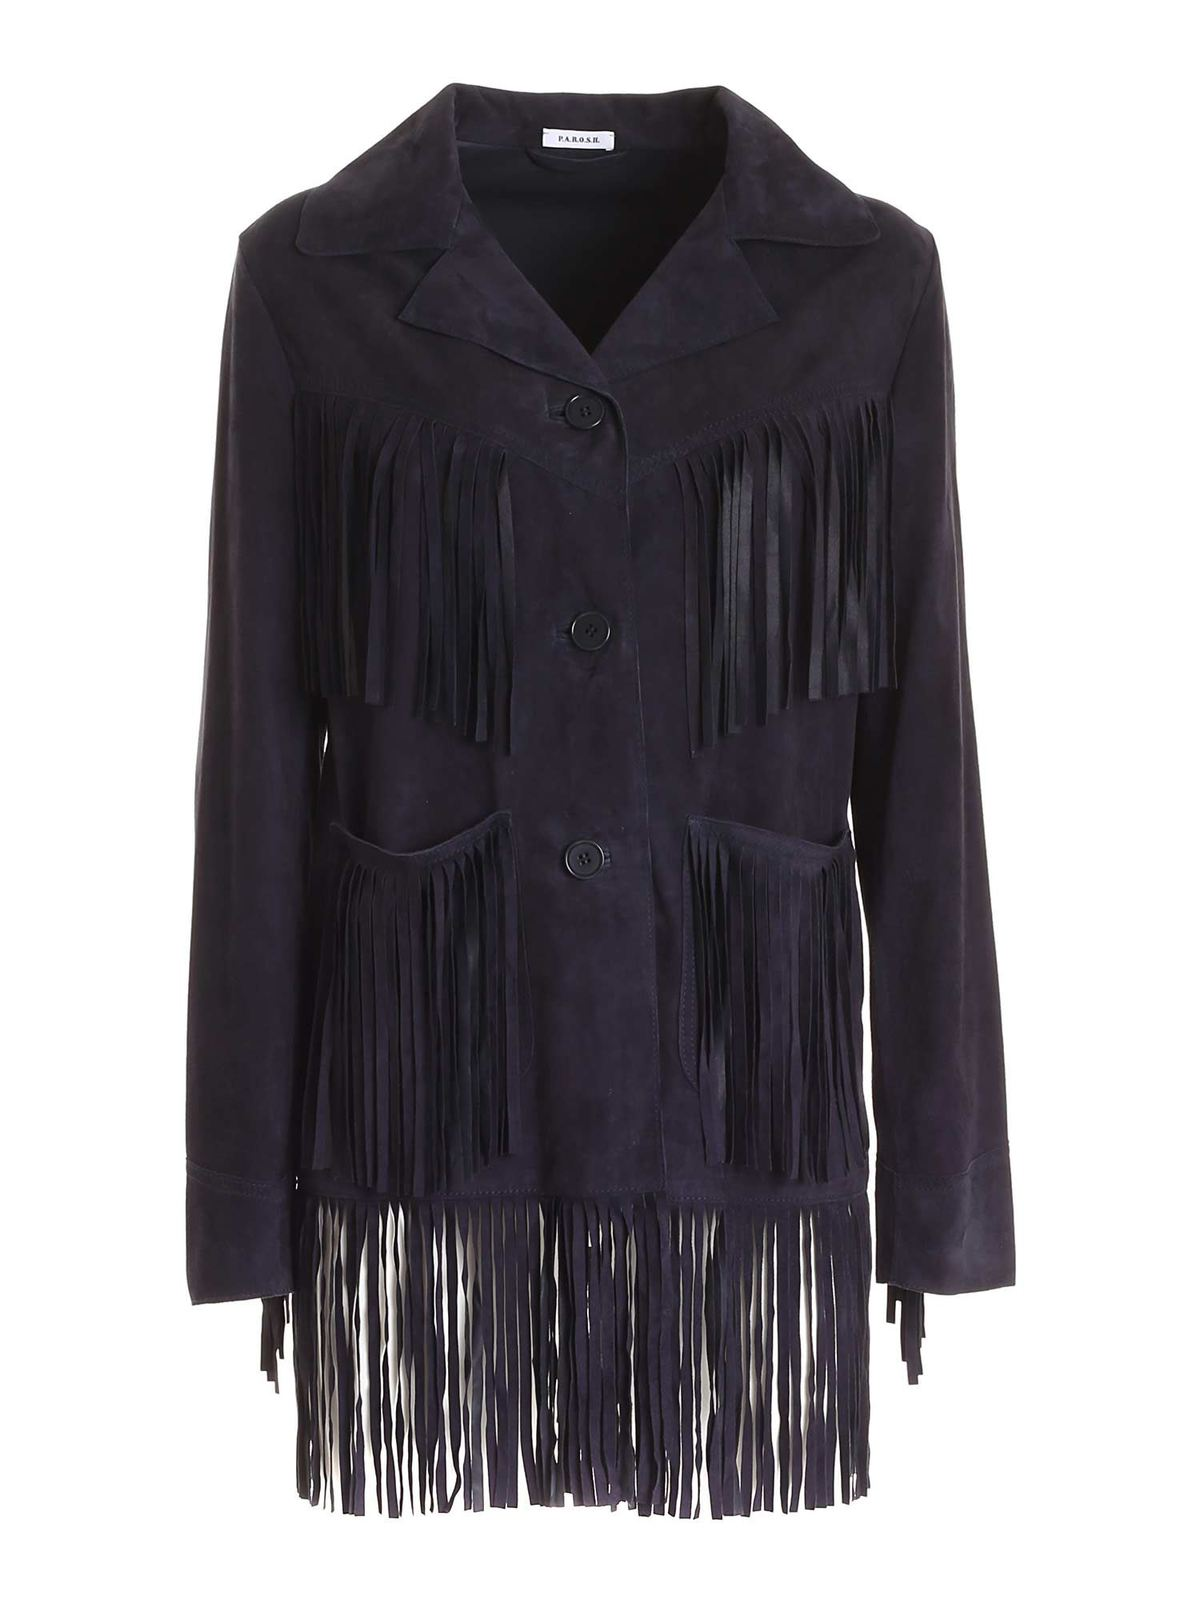 P.a.r.o.s.h. FRINGES SUEDE JACKET IN BLUE